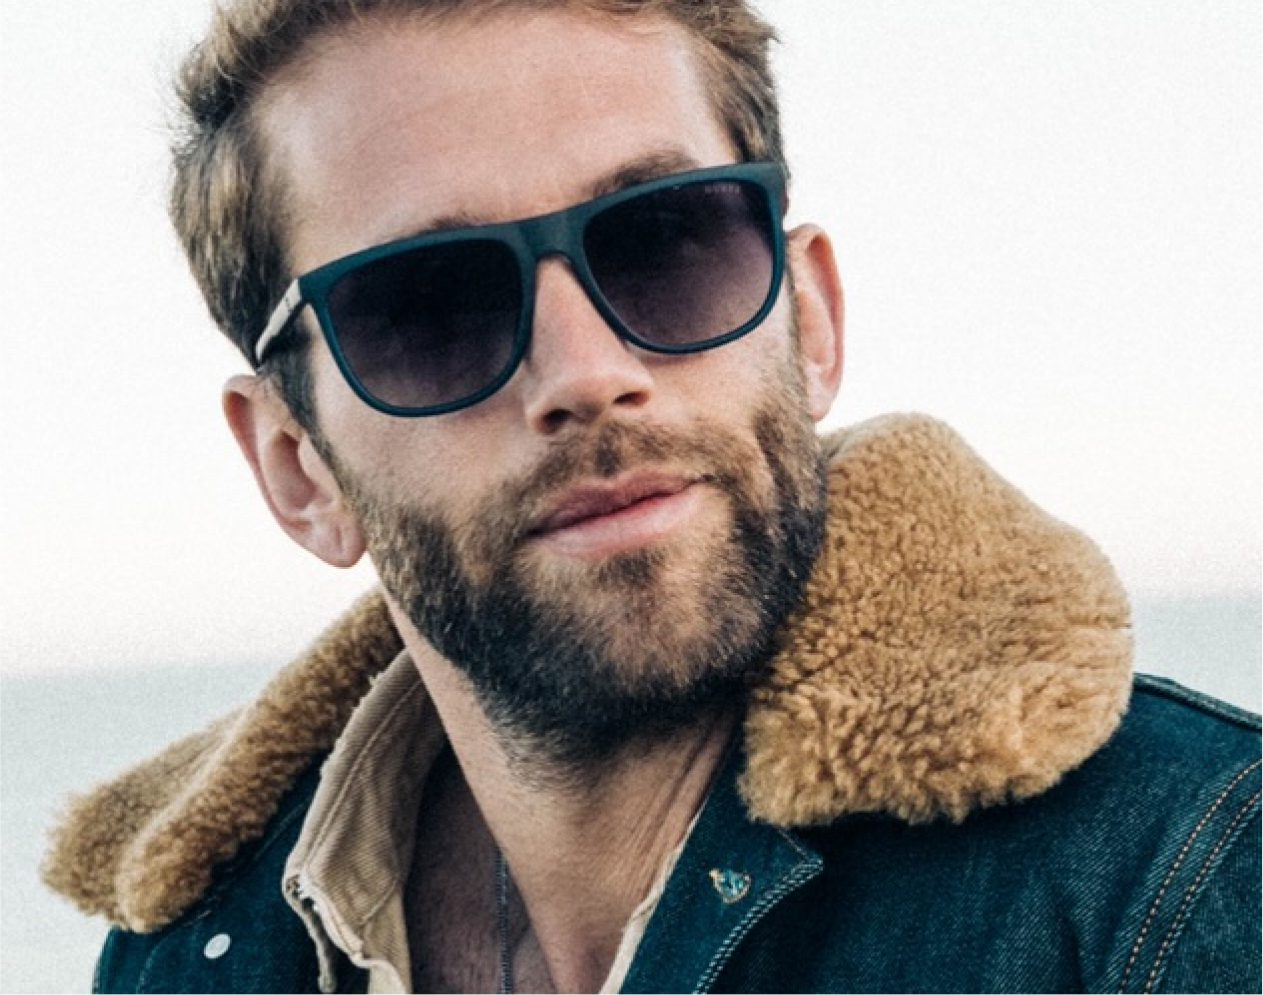 andre guess sunglasses influencer